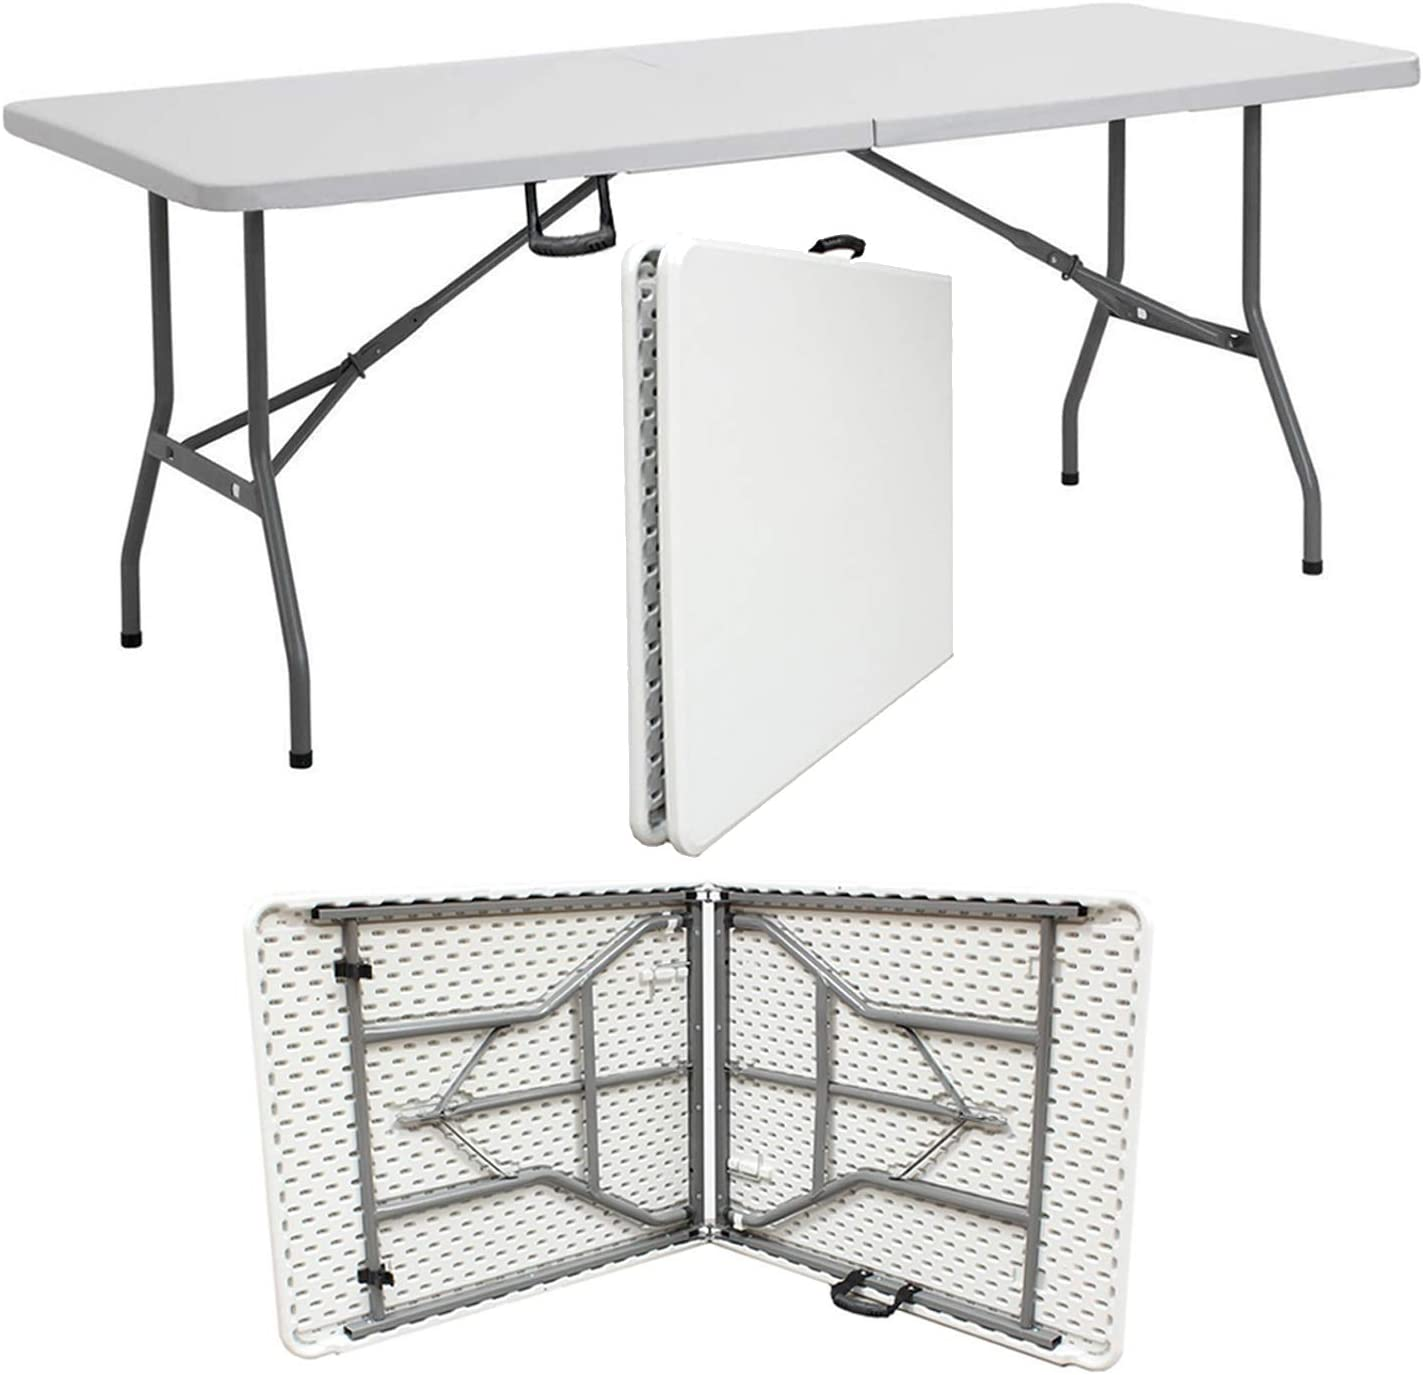 5ft /& 6ft Camping Catering Heavy Duty Folding Trestle Table For BBQ Picnic Party by Crystals/® 6ft Folding Table Denny Shop 4ft